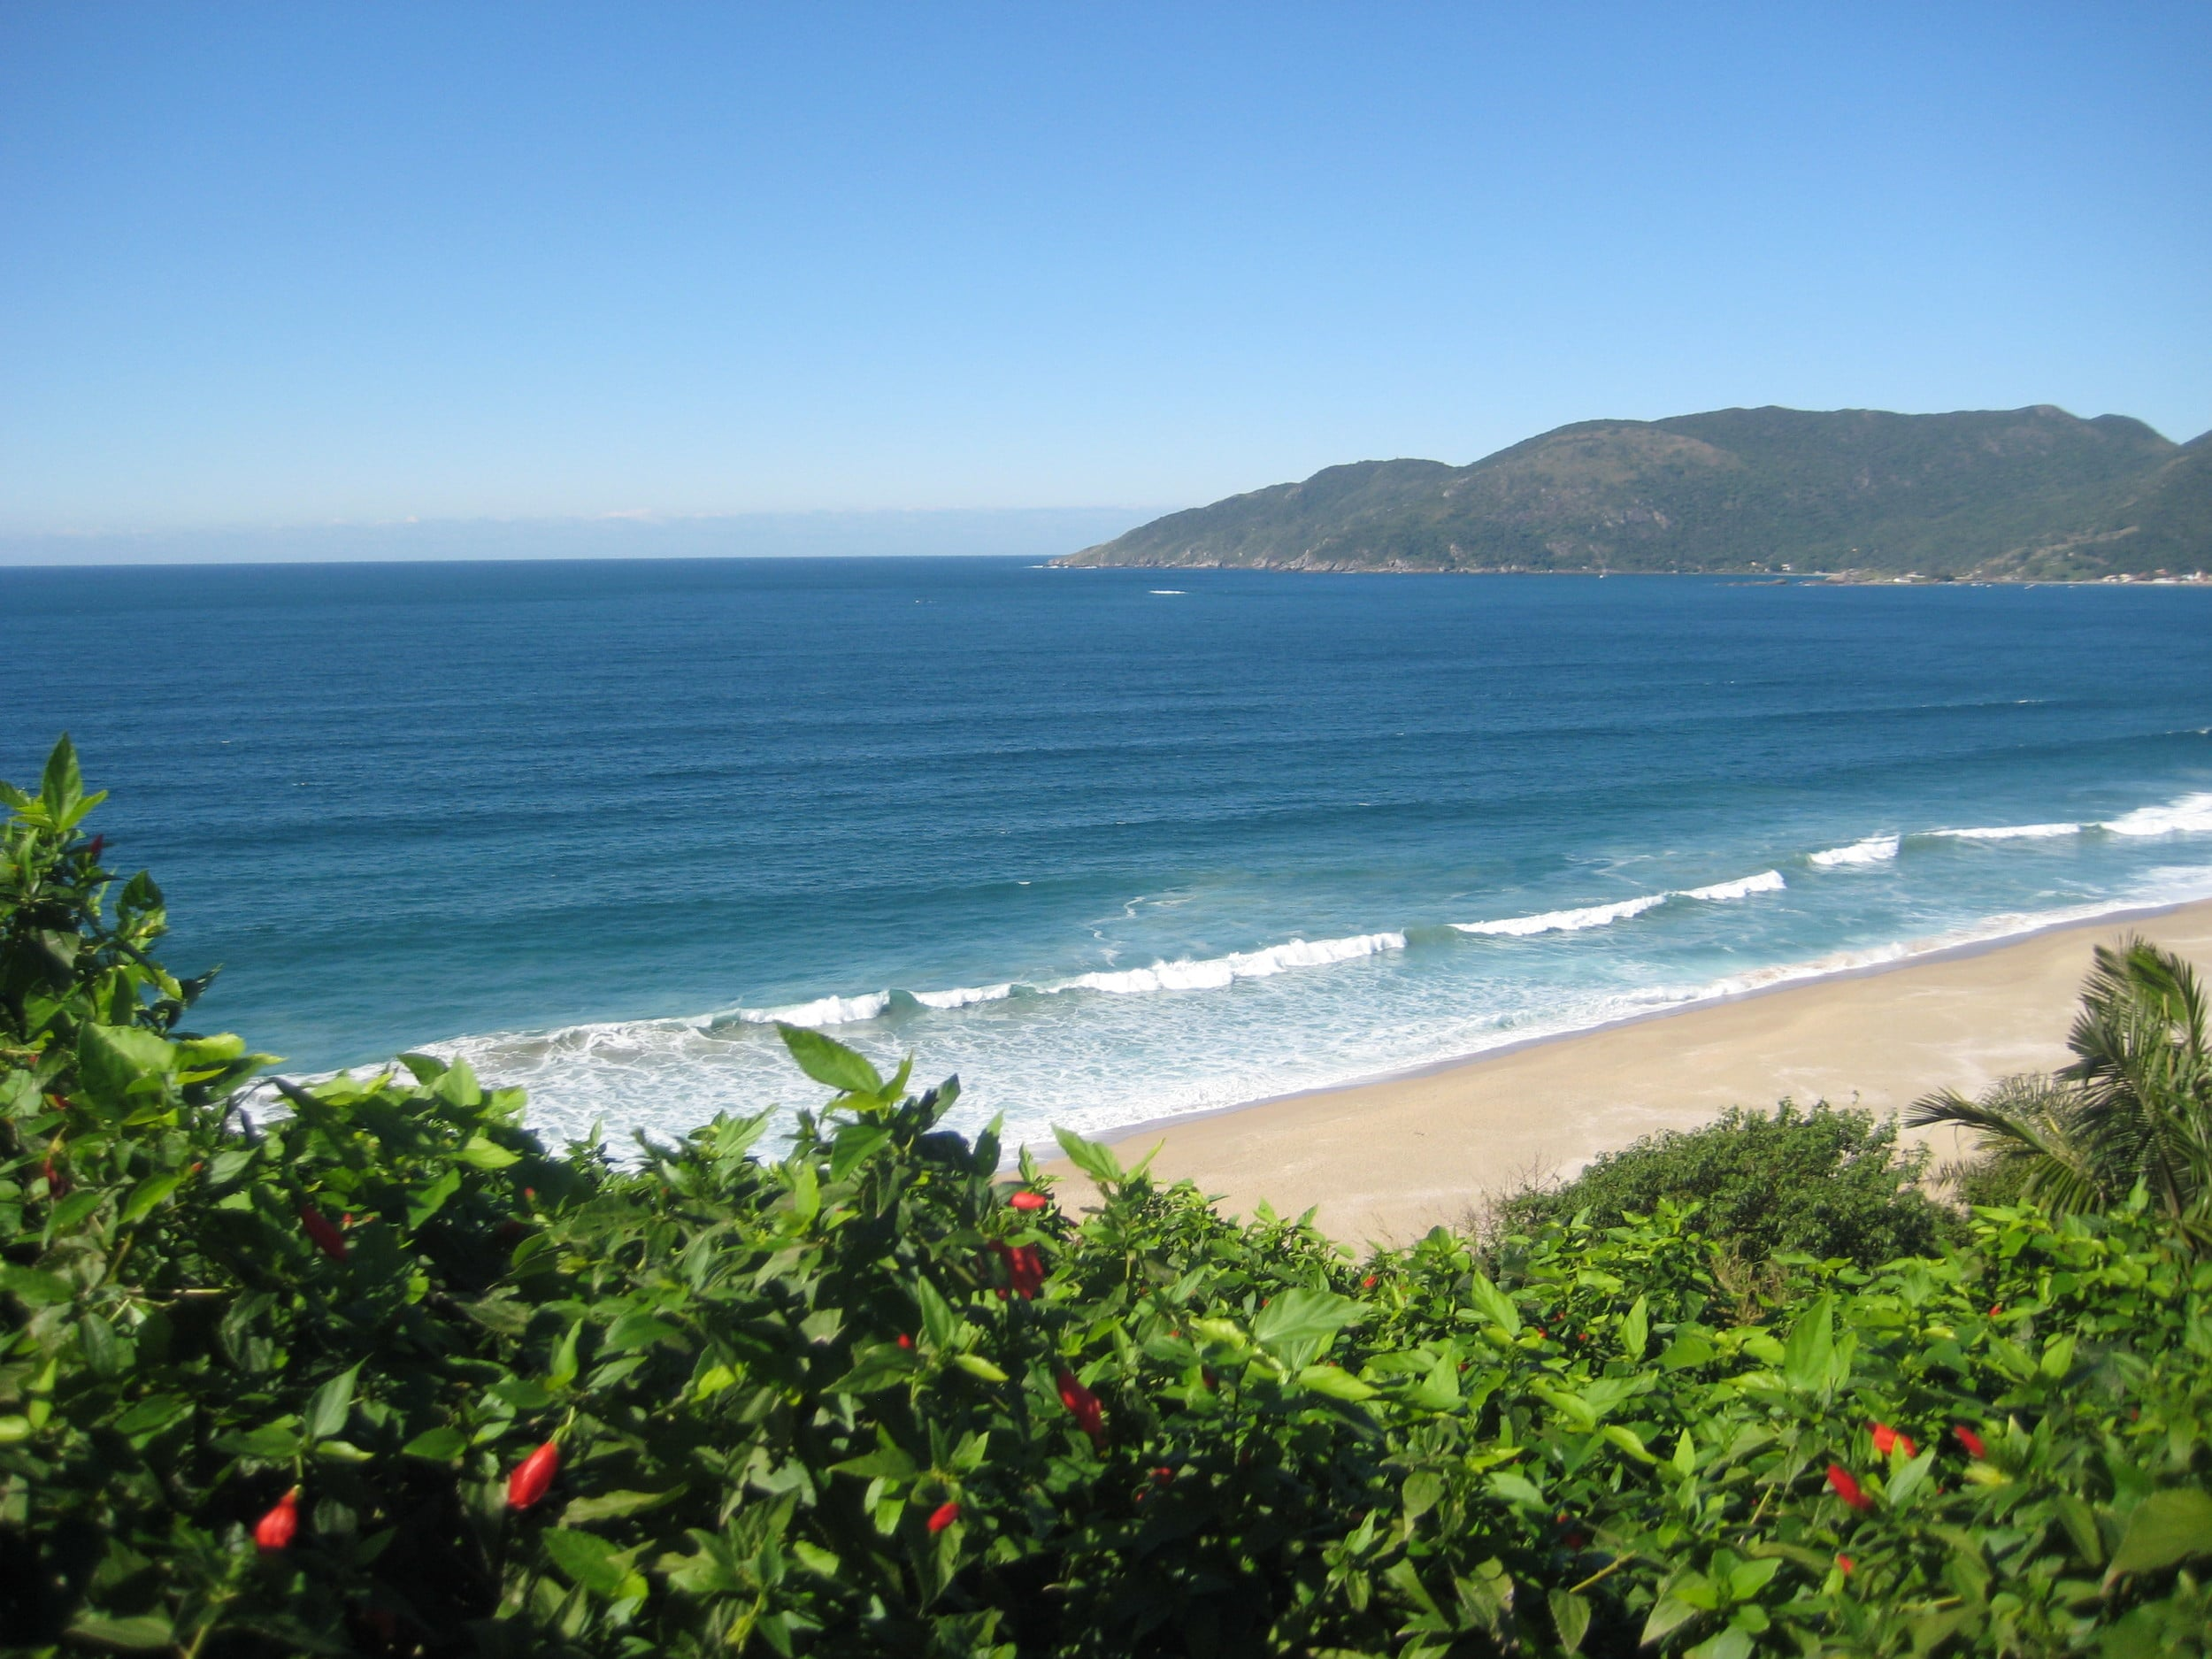 I love clean beaches, don't you? Let's keep them beautiful and take care of the wildlife. Florianopolis, Brasil